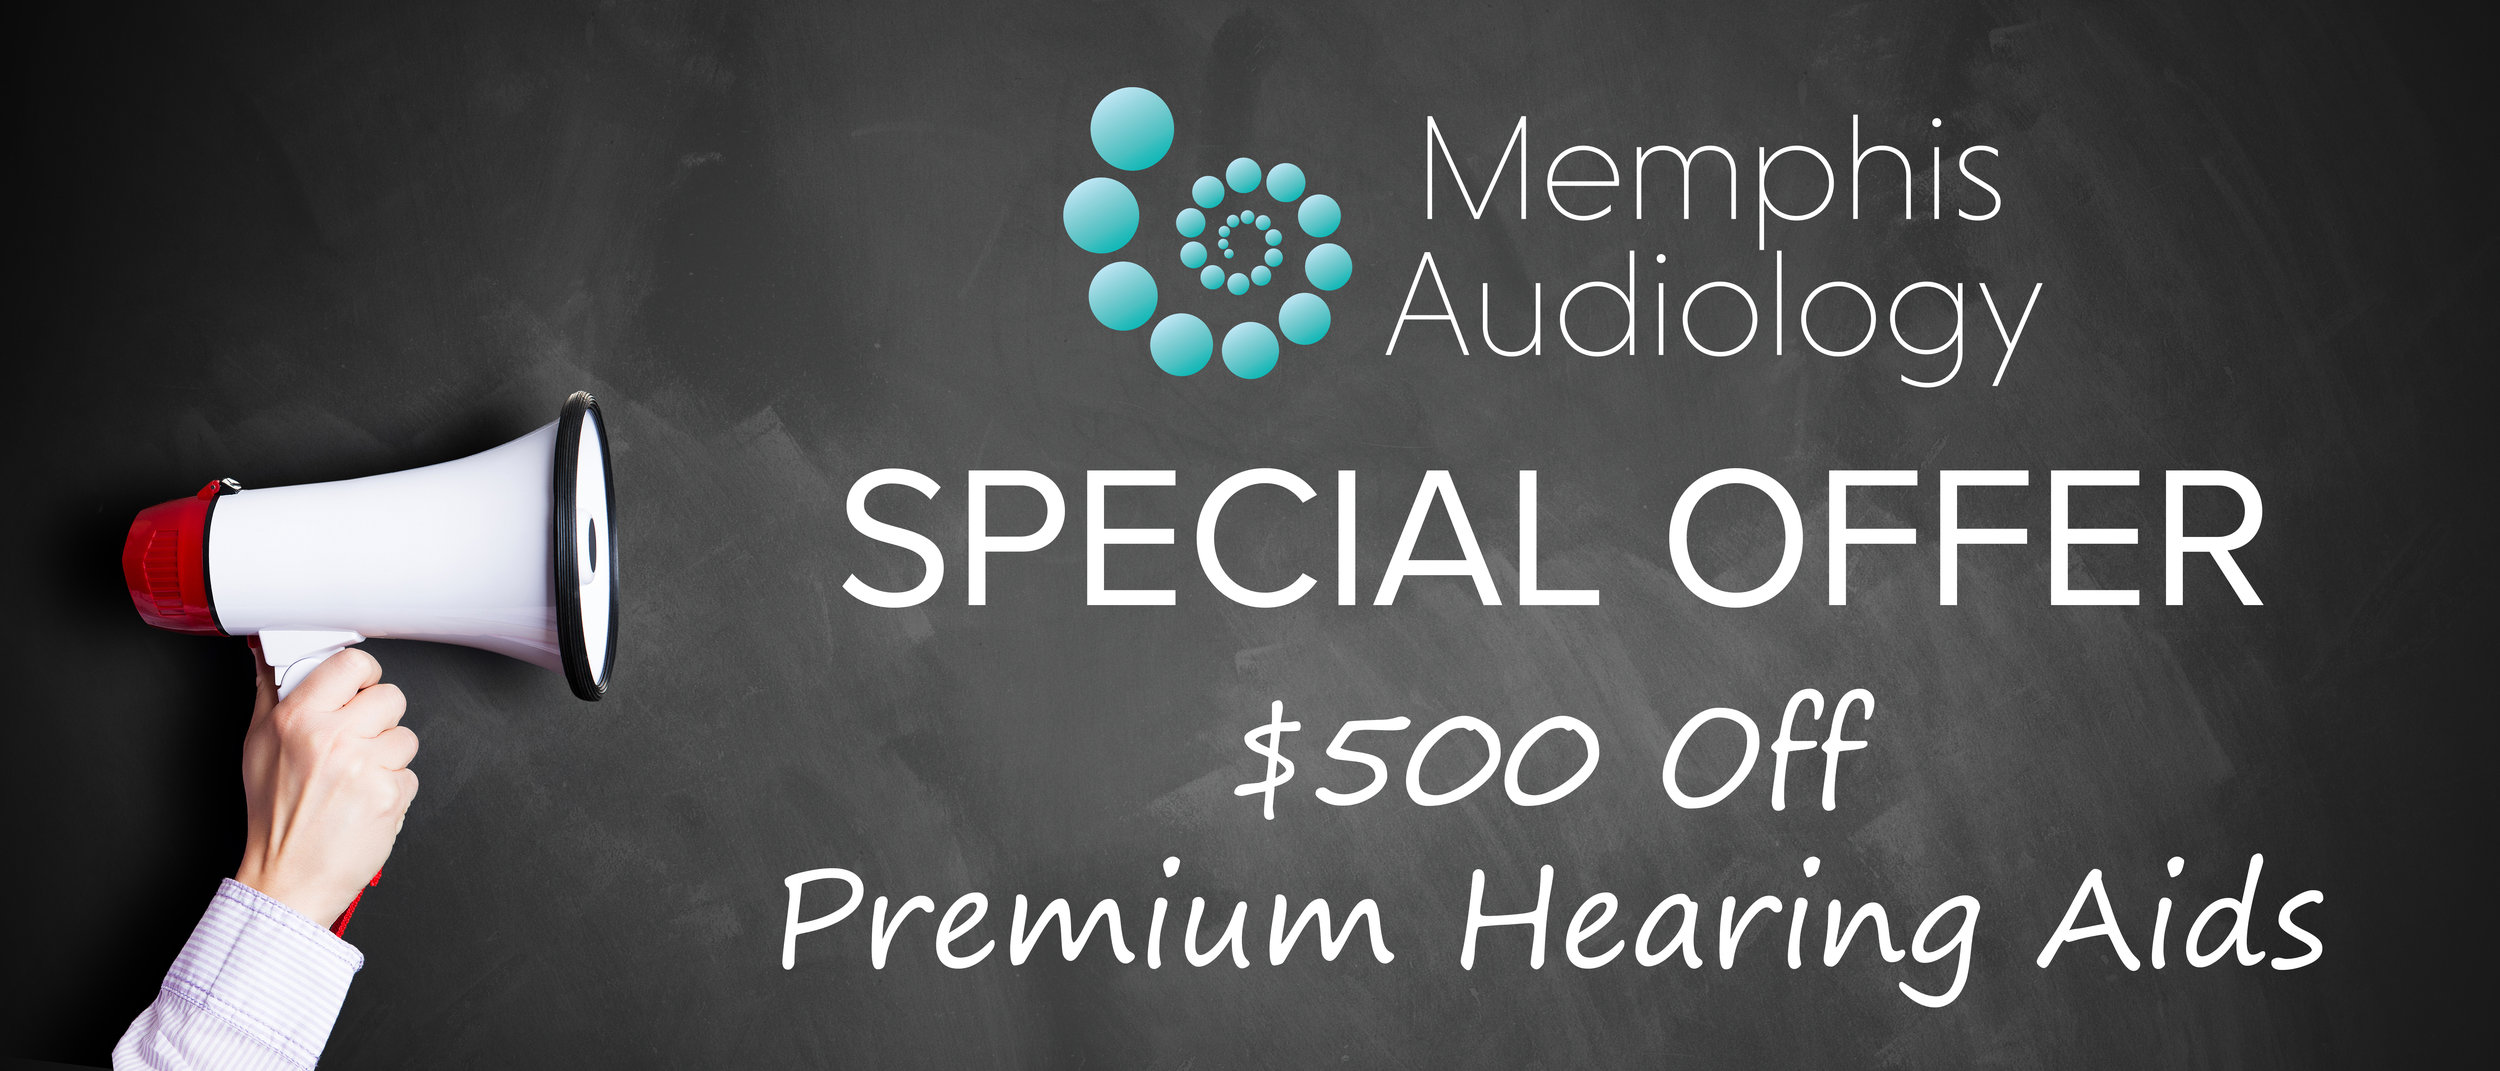 Memphis Audiology - Special Offer.jpg